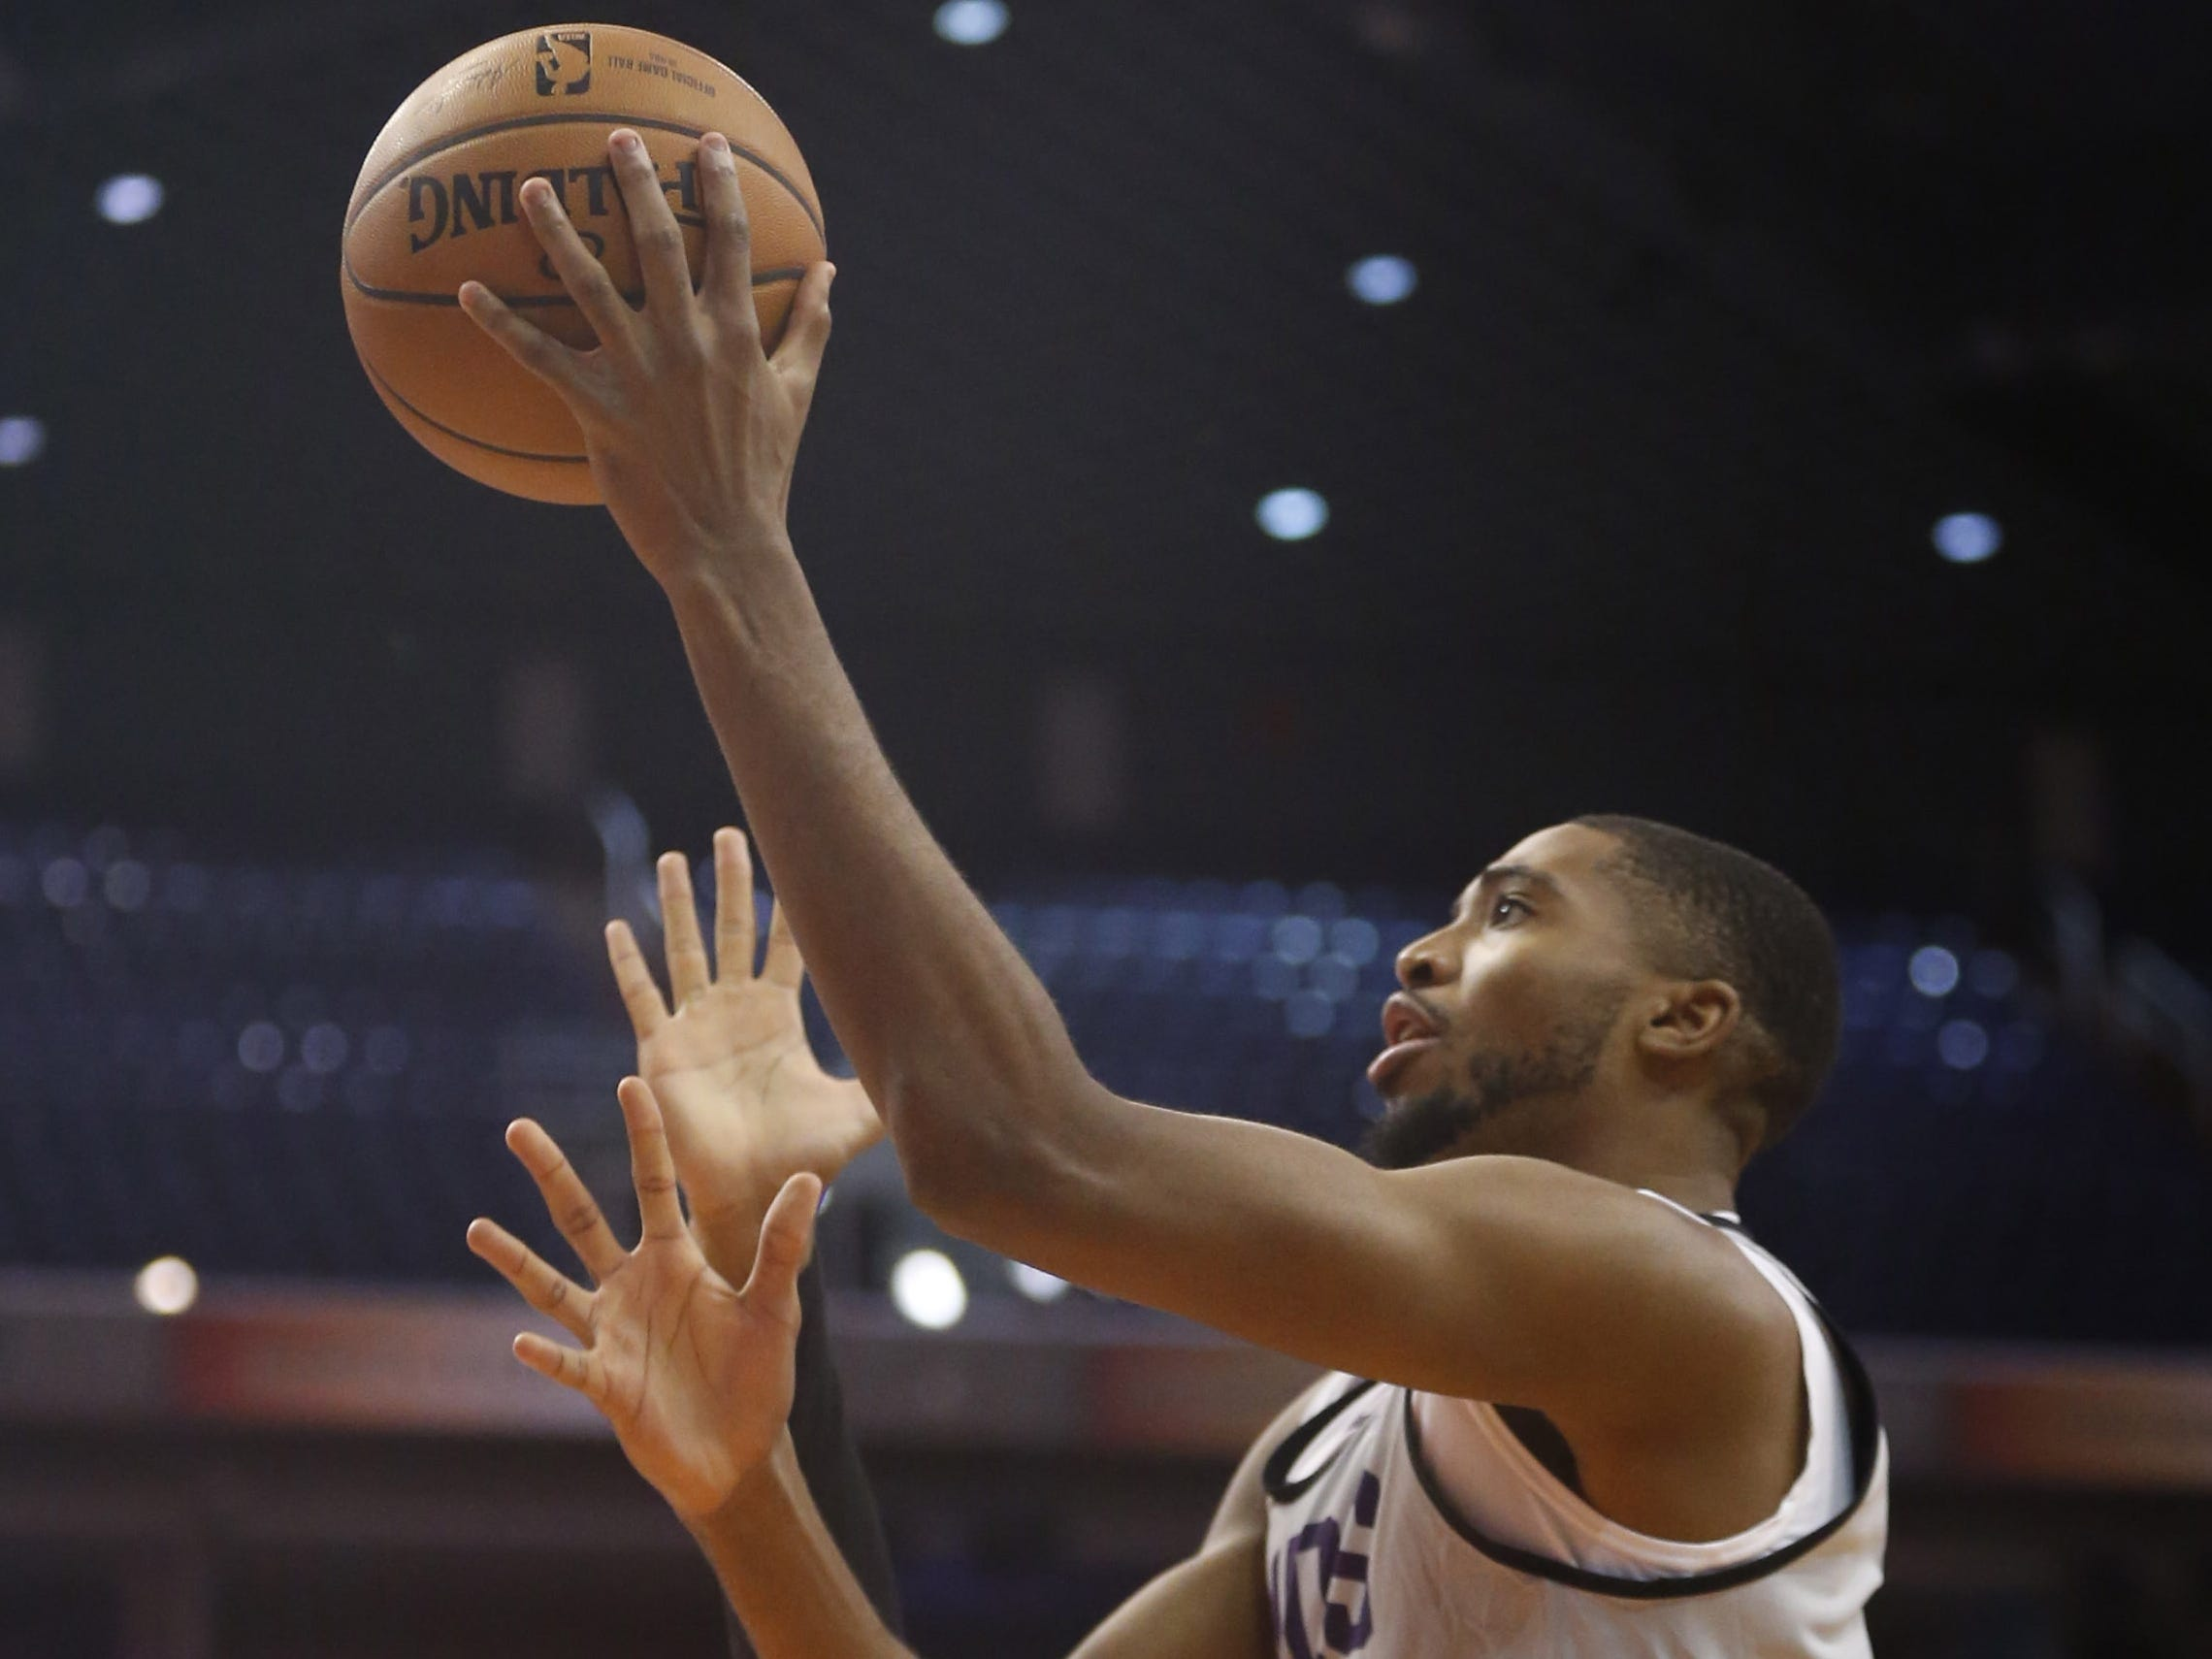 Suns Mikal Bridges shoots against Ellie Okobo during an Open Practice at Talking Stick Resort Arena in Phoenix, Ariz. on Sept. 29, 2018.